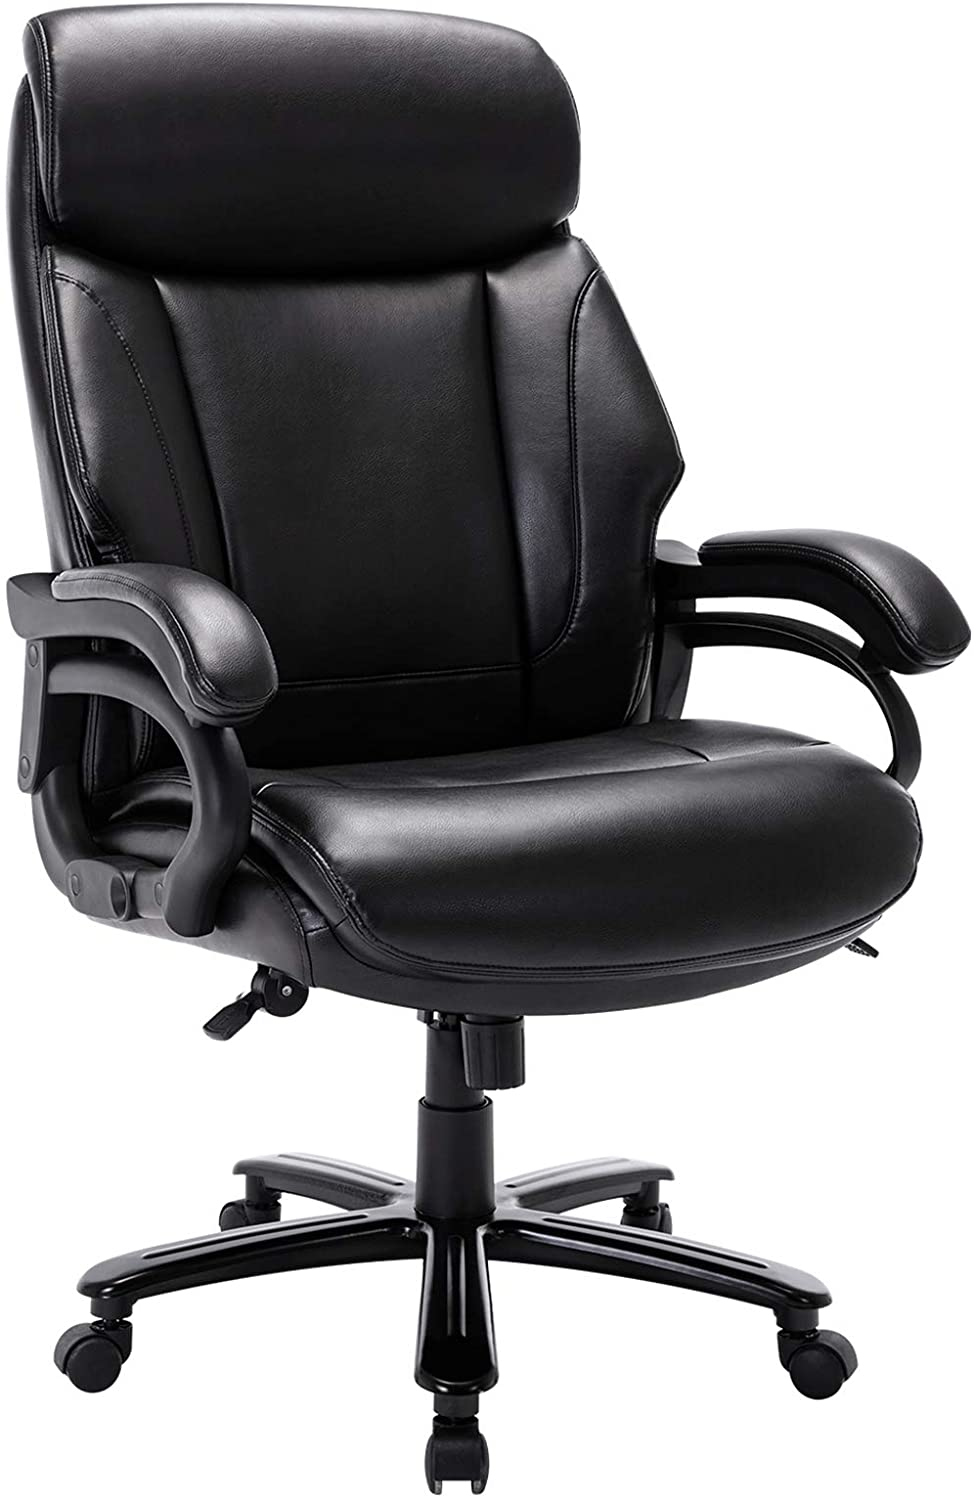 Qwork - best office chairs for big guys